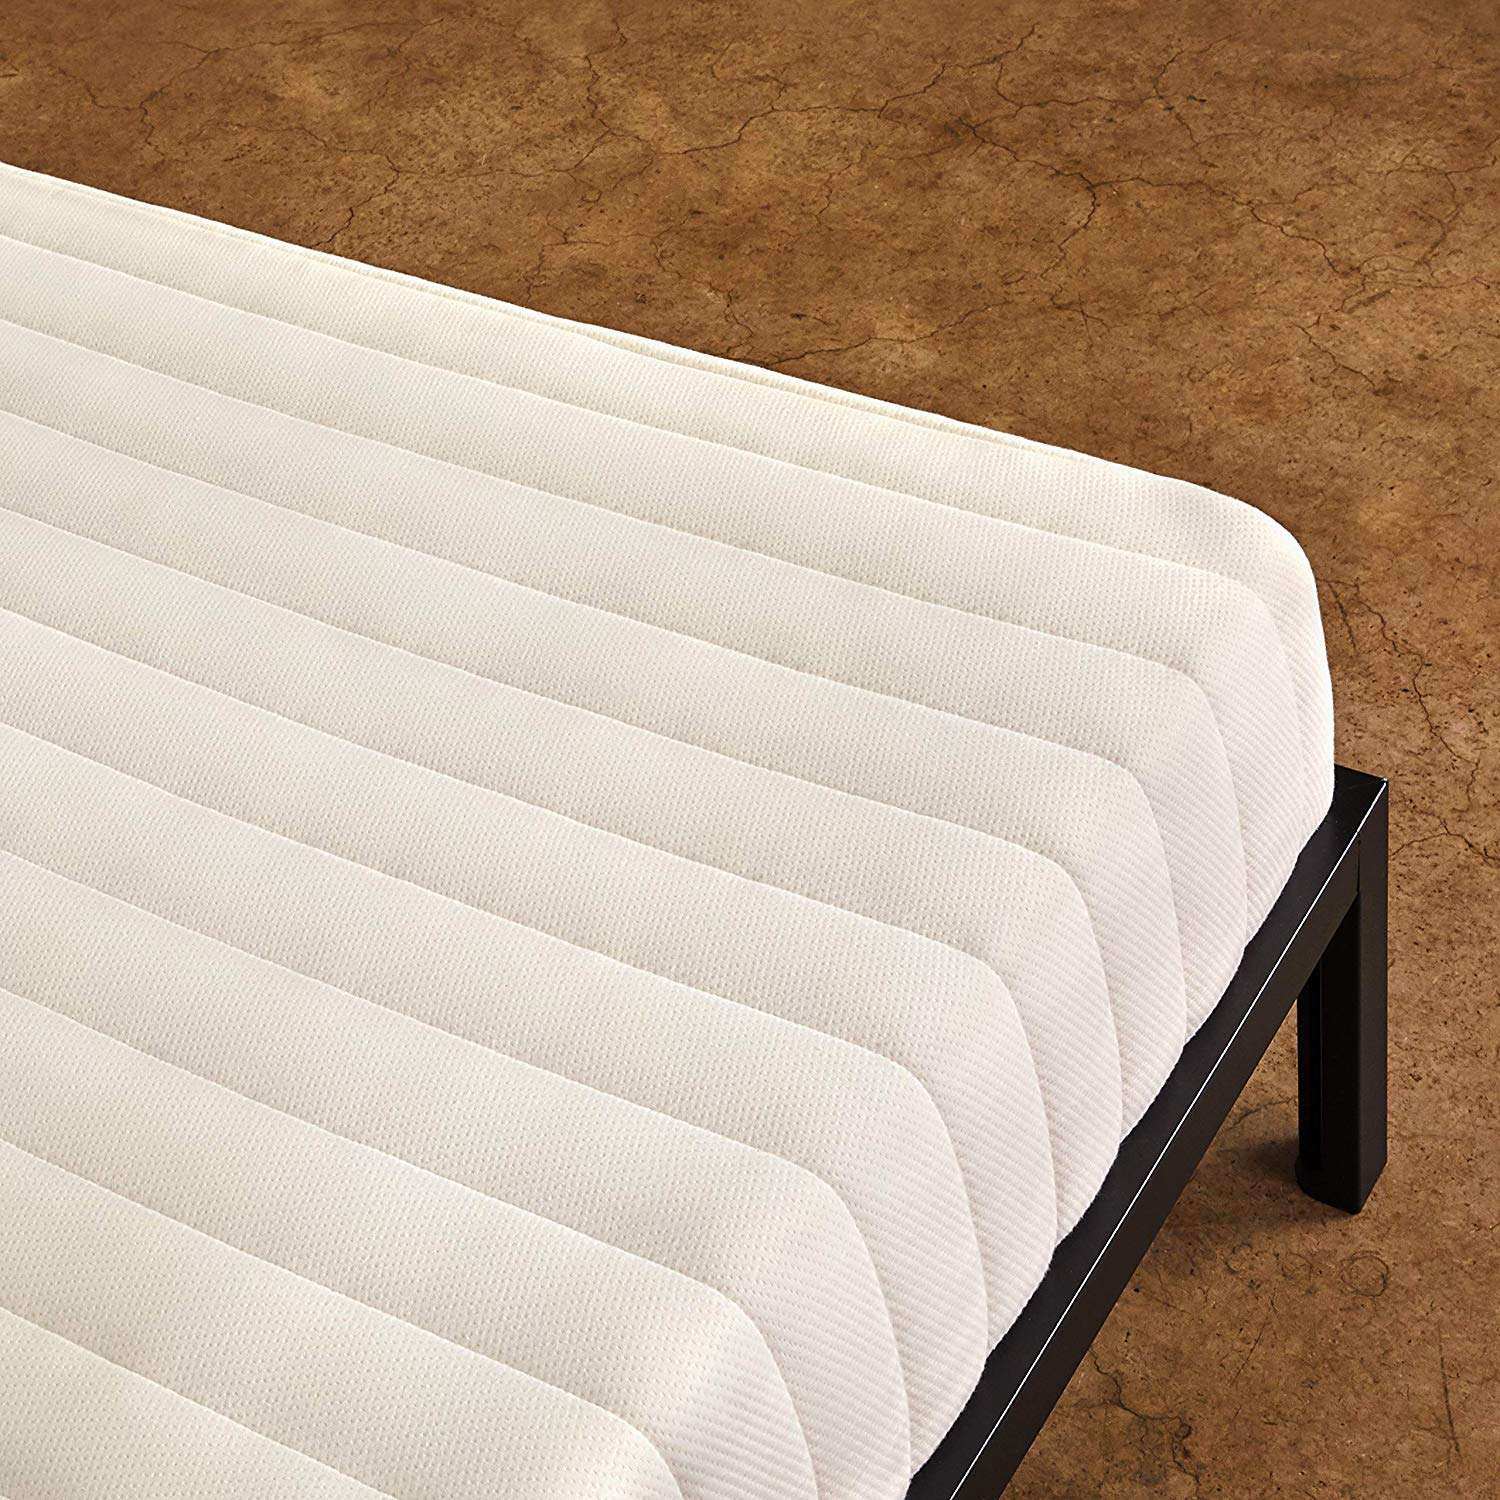 Sleep On Latex Best Mattress for Side Sleepers review by www.snoremegazine.com